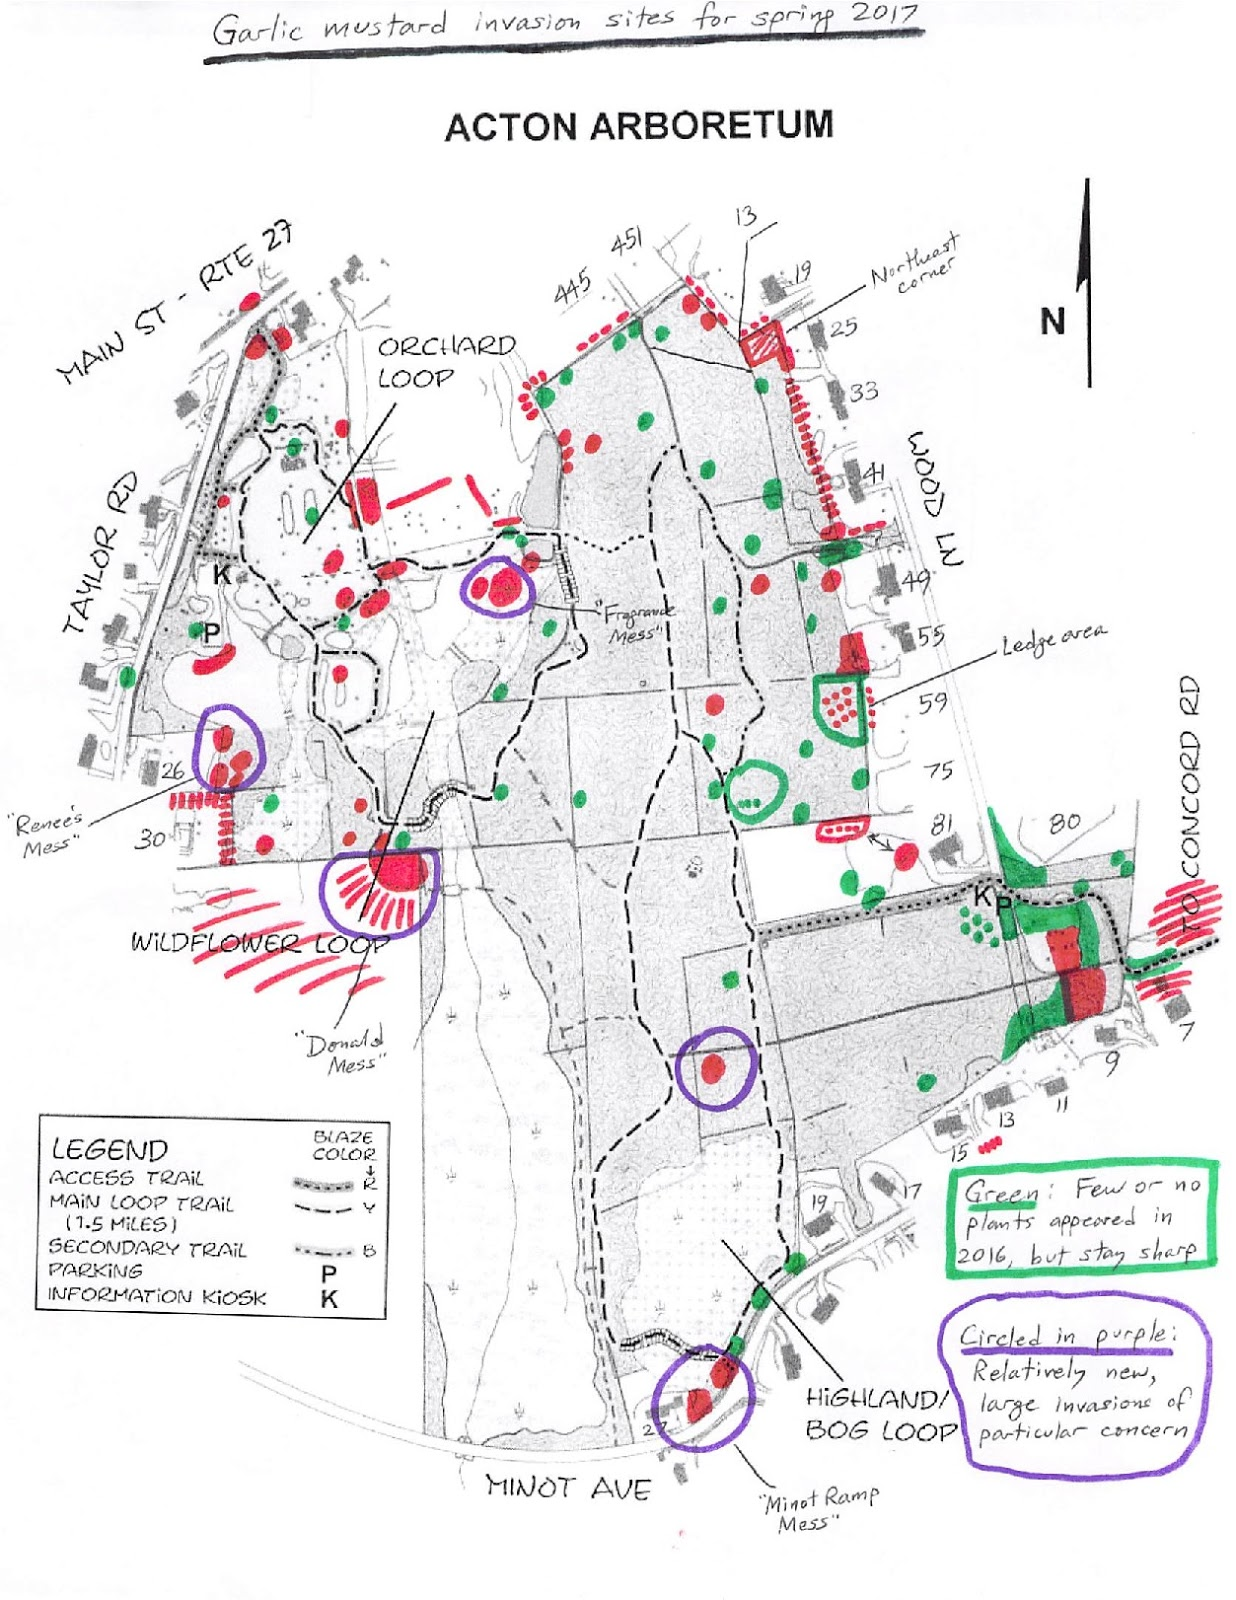 volunteer bruce carley came up with his usual excellent annual map of garlic mustard invasions at the arboretum and abutters